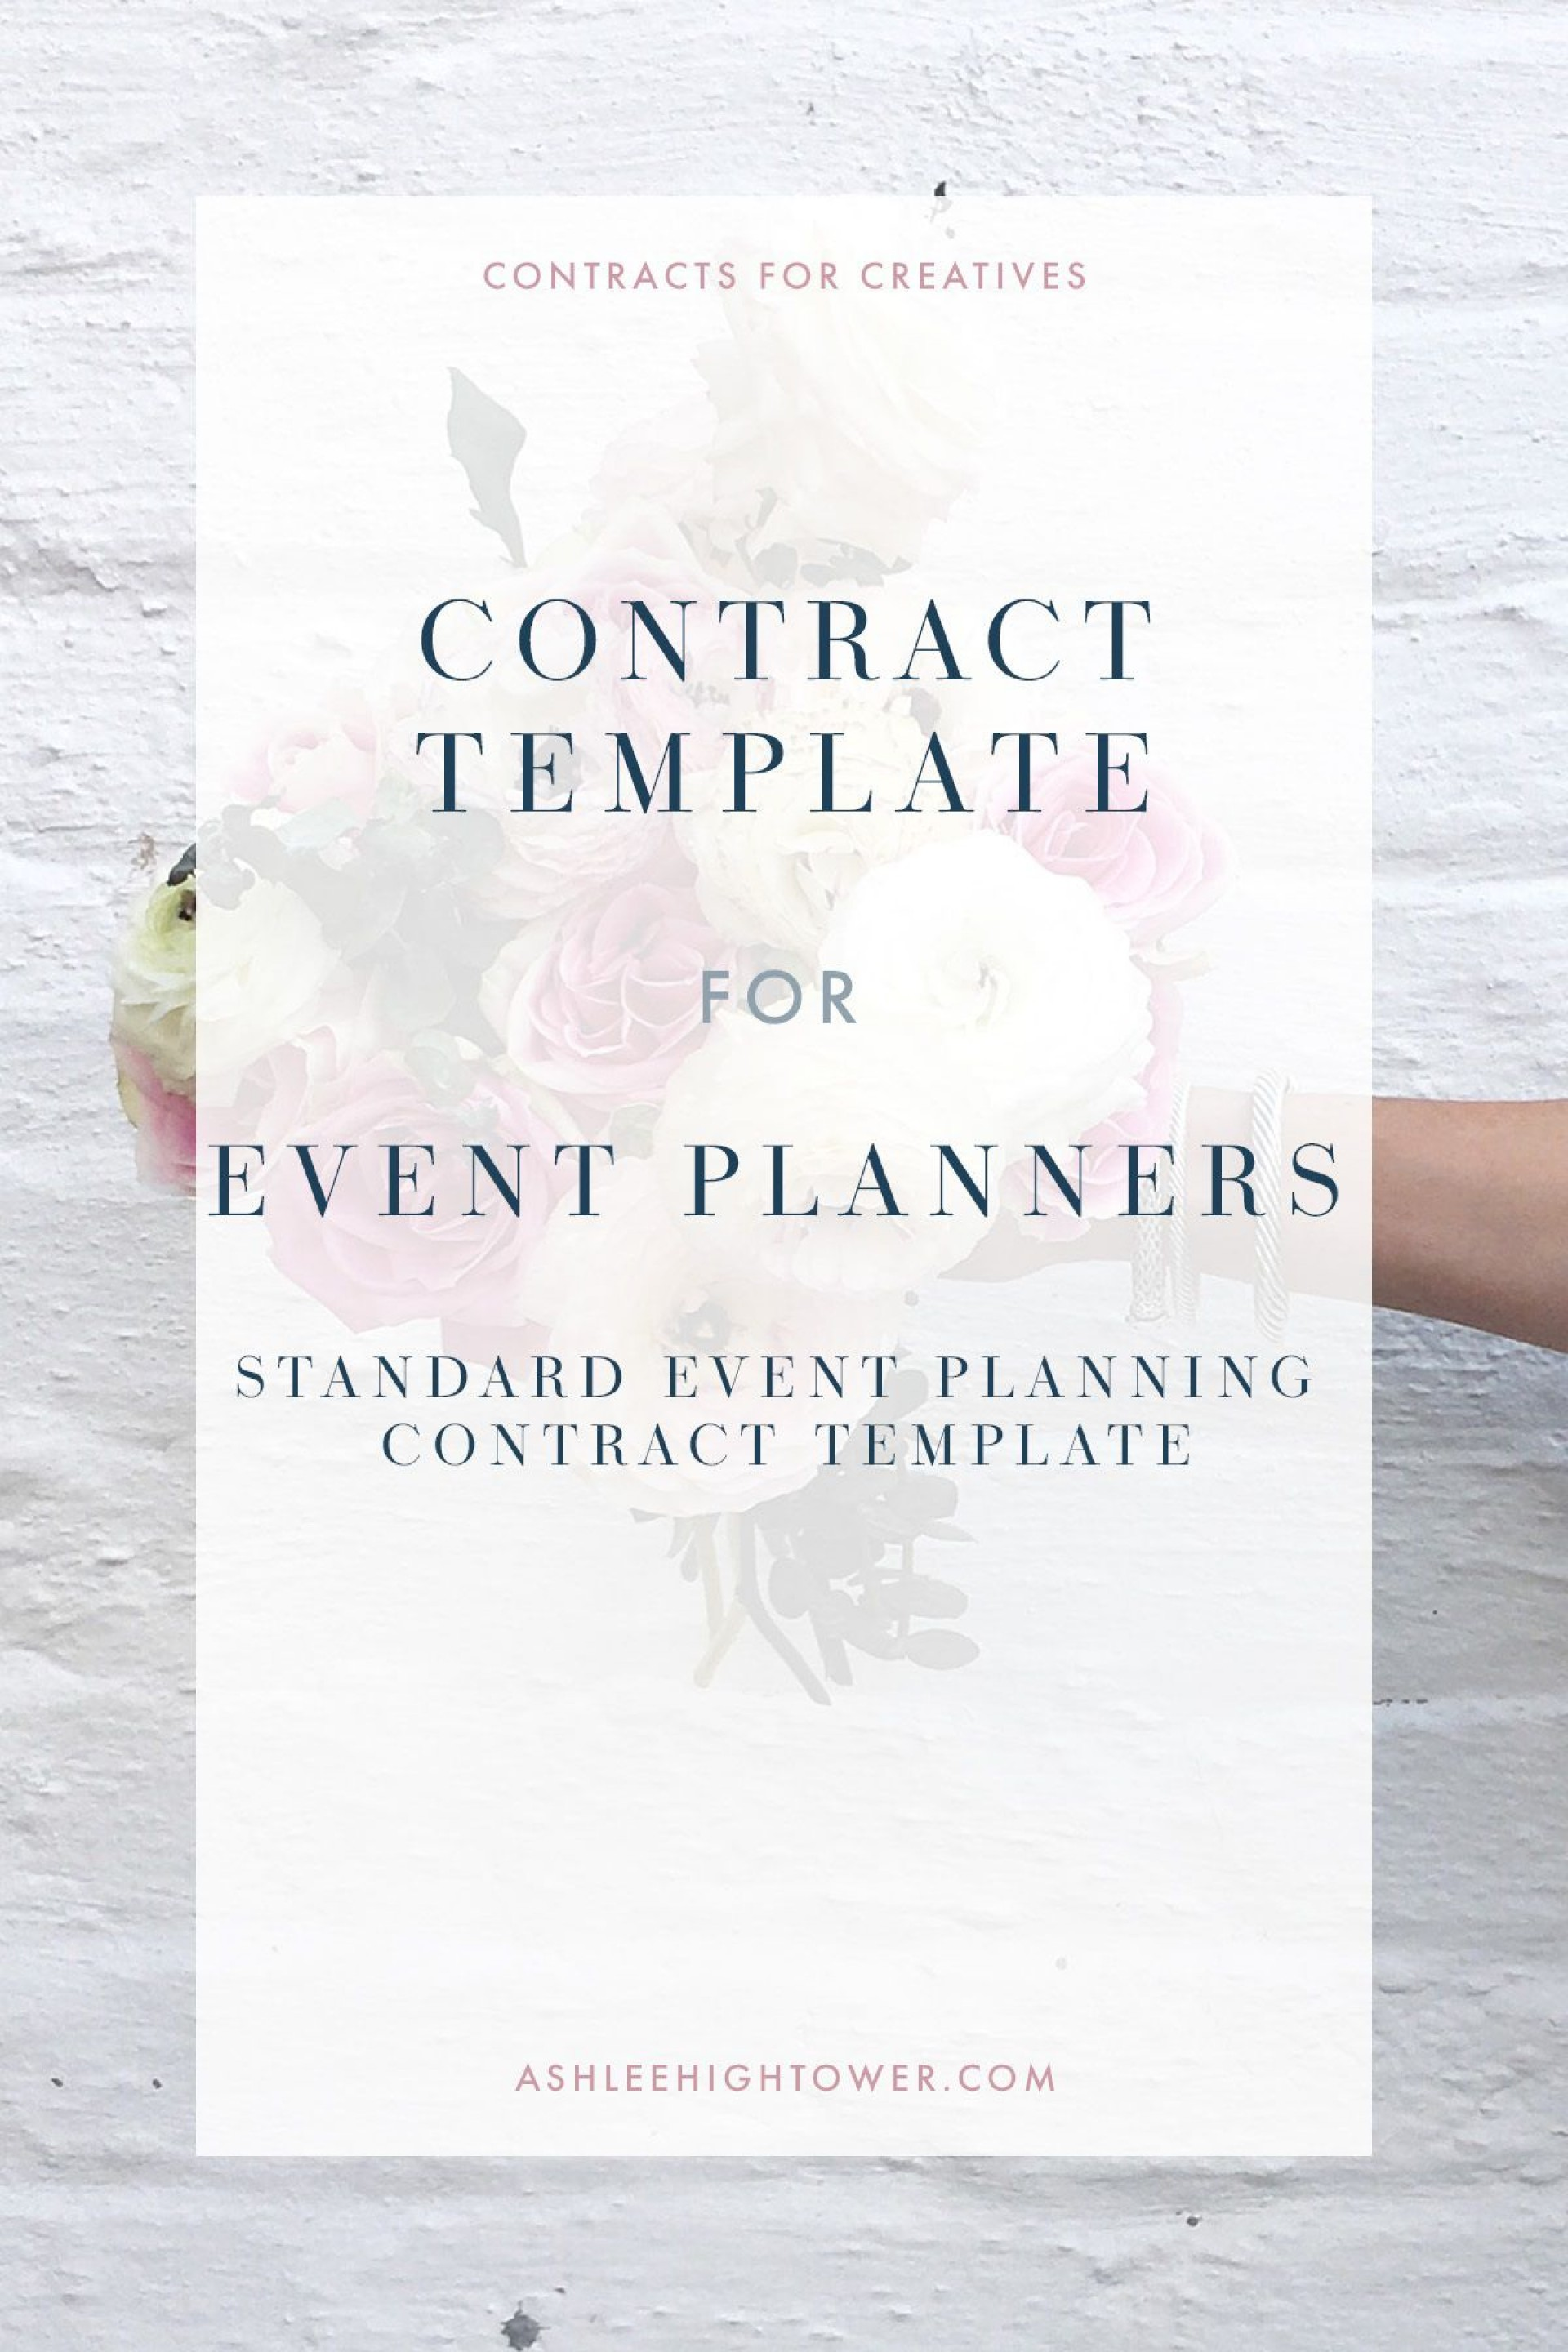 005 Excellent Event Planner Contract Template Picture  Free Download Planning1920